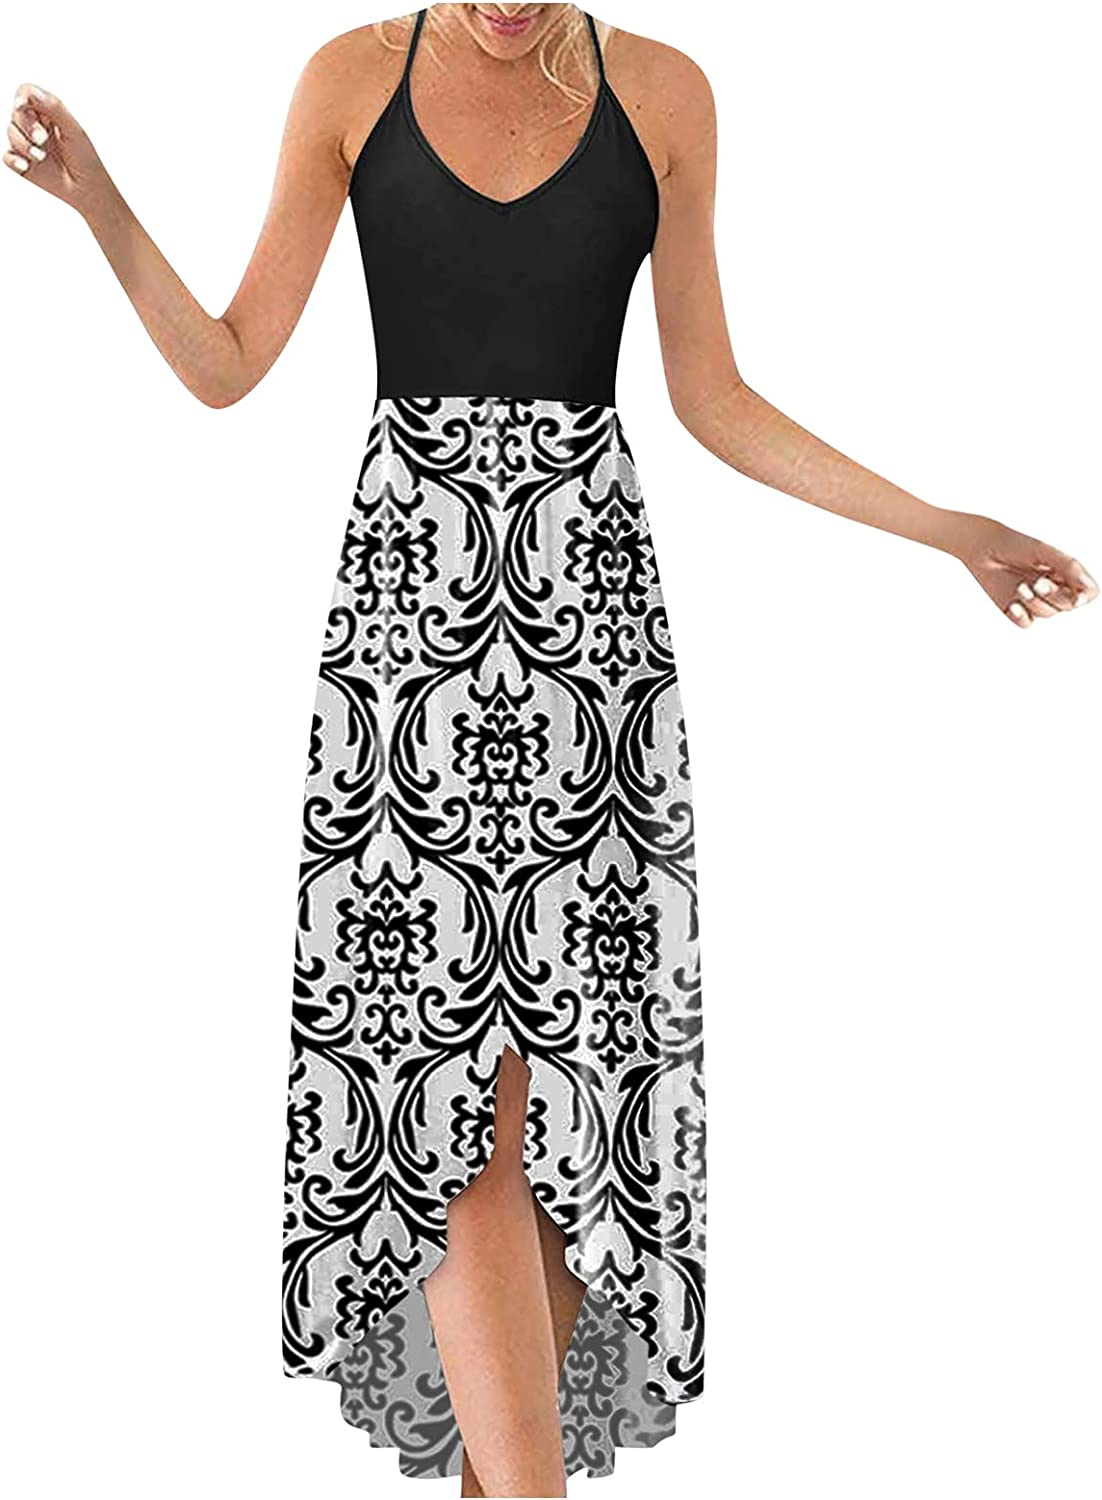 Aniwood Summer Dresses for Women,Women's Casual Deep V Strappy Floral Print Oversize Maxi Dresses Beach Cami Long Dress